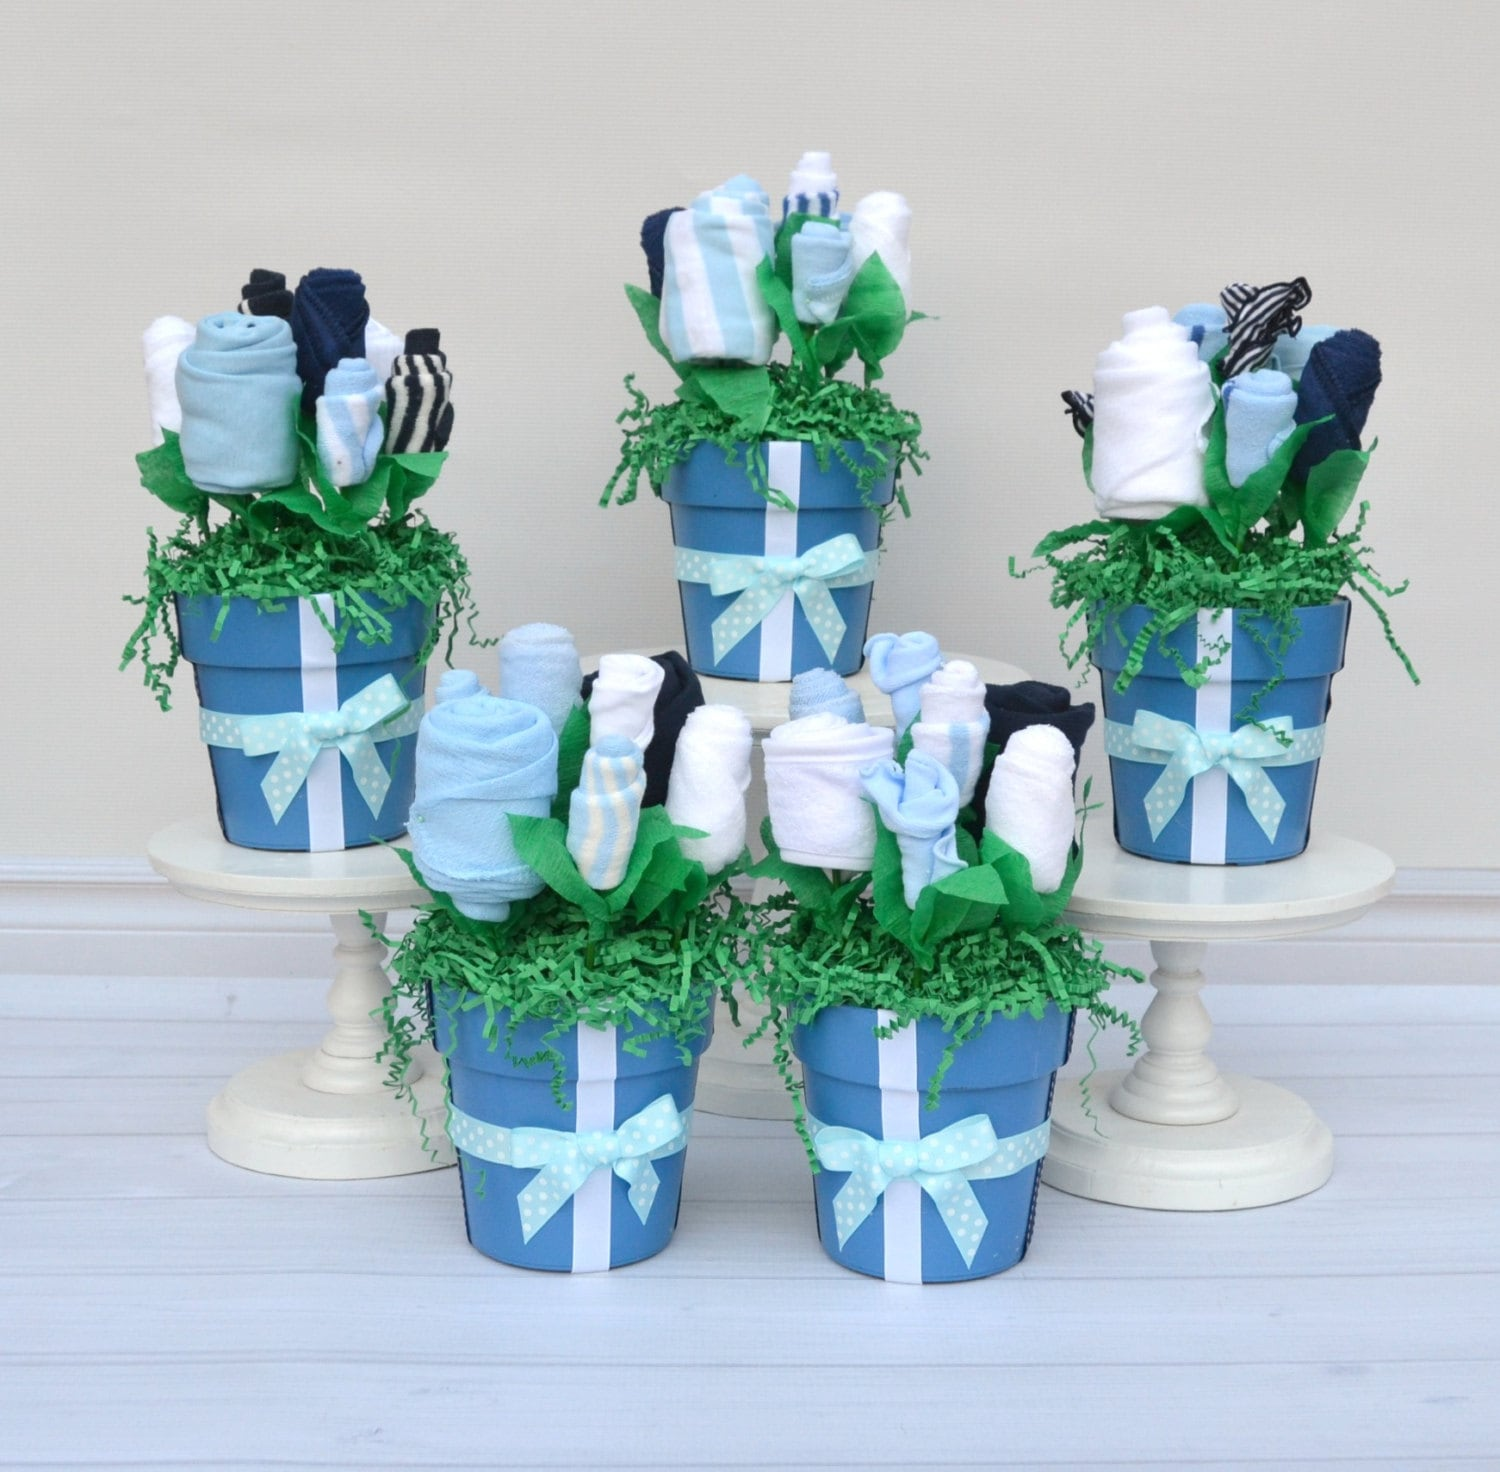 Baby shower ideas baby shower centerpieces shower decor baby bouquet centerpieces baby boy - Baby shower ideas for a boy centerpieces ...